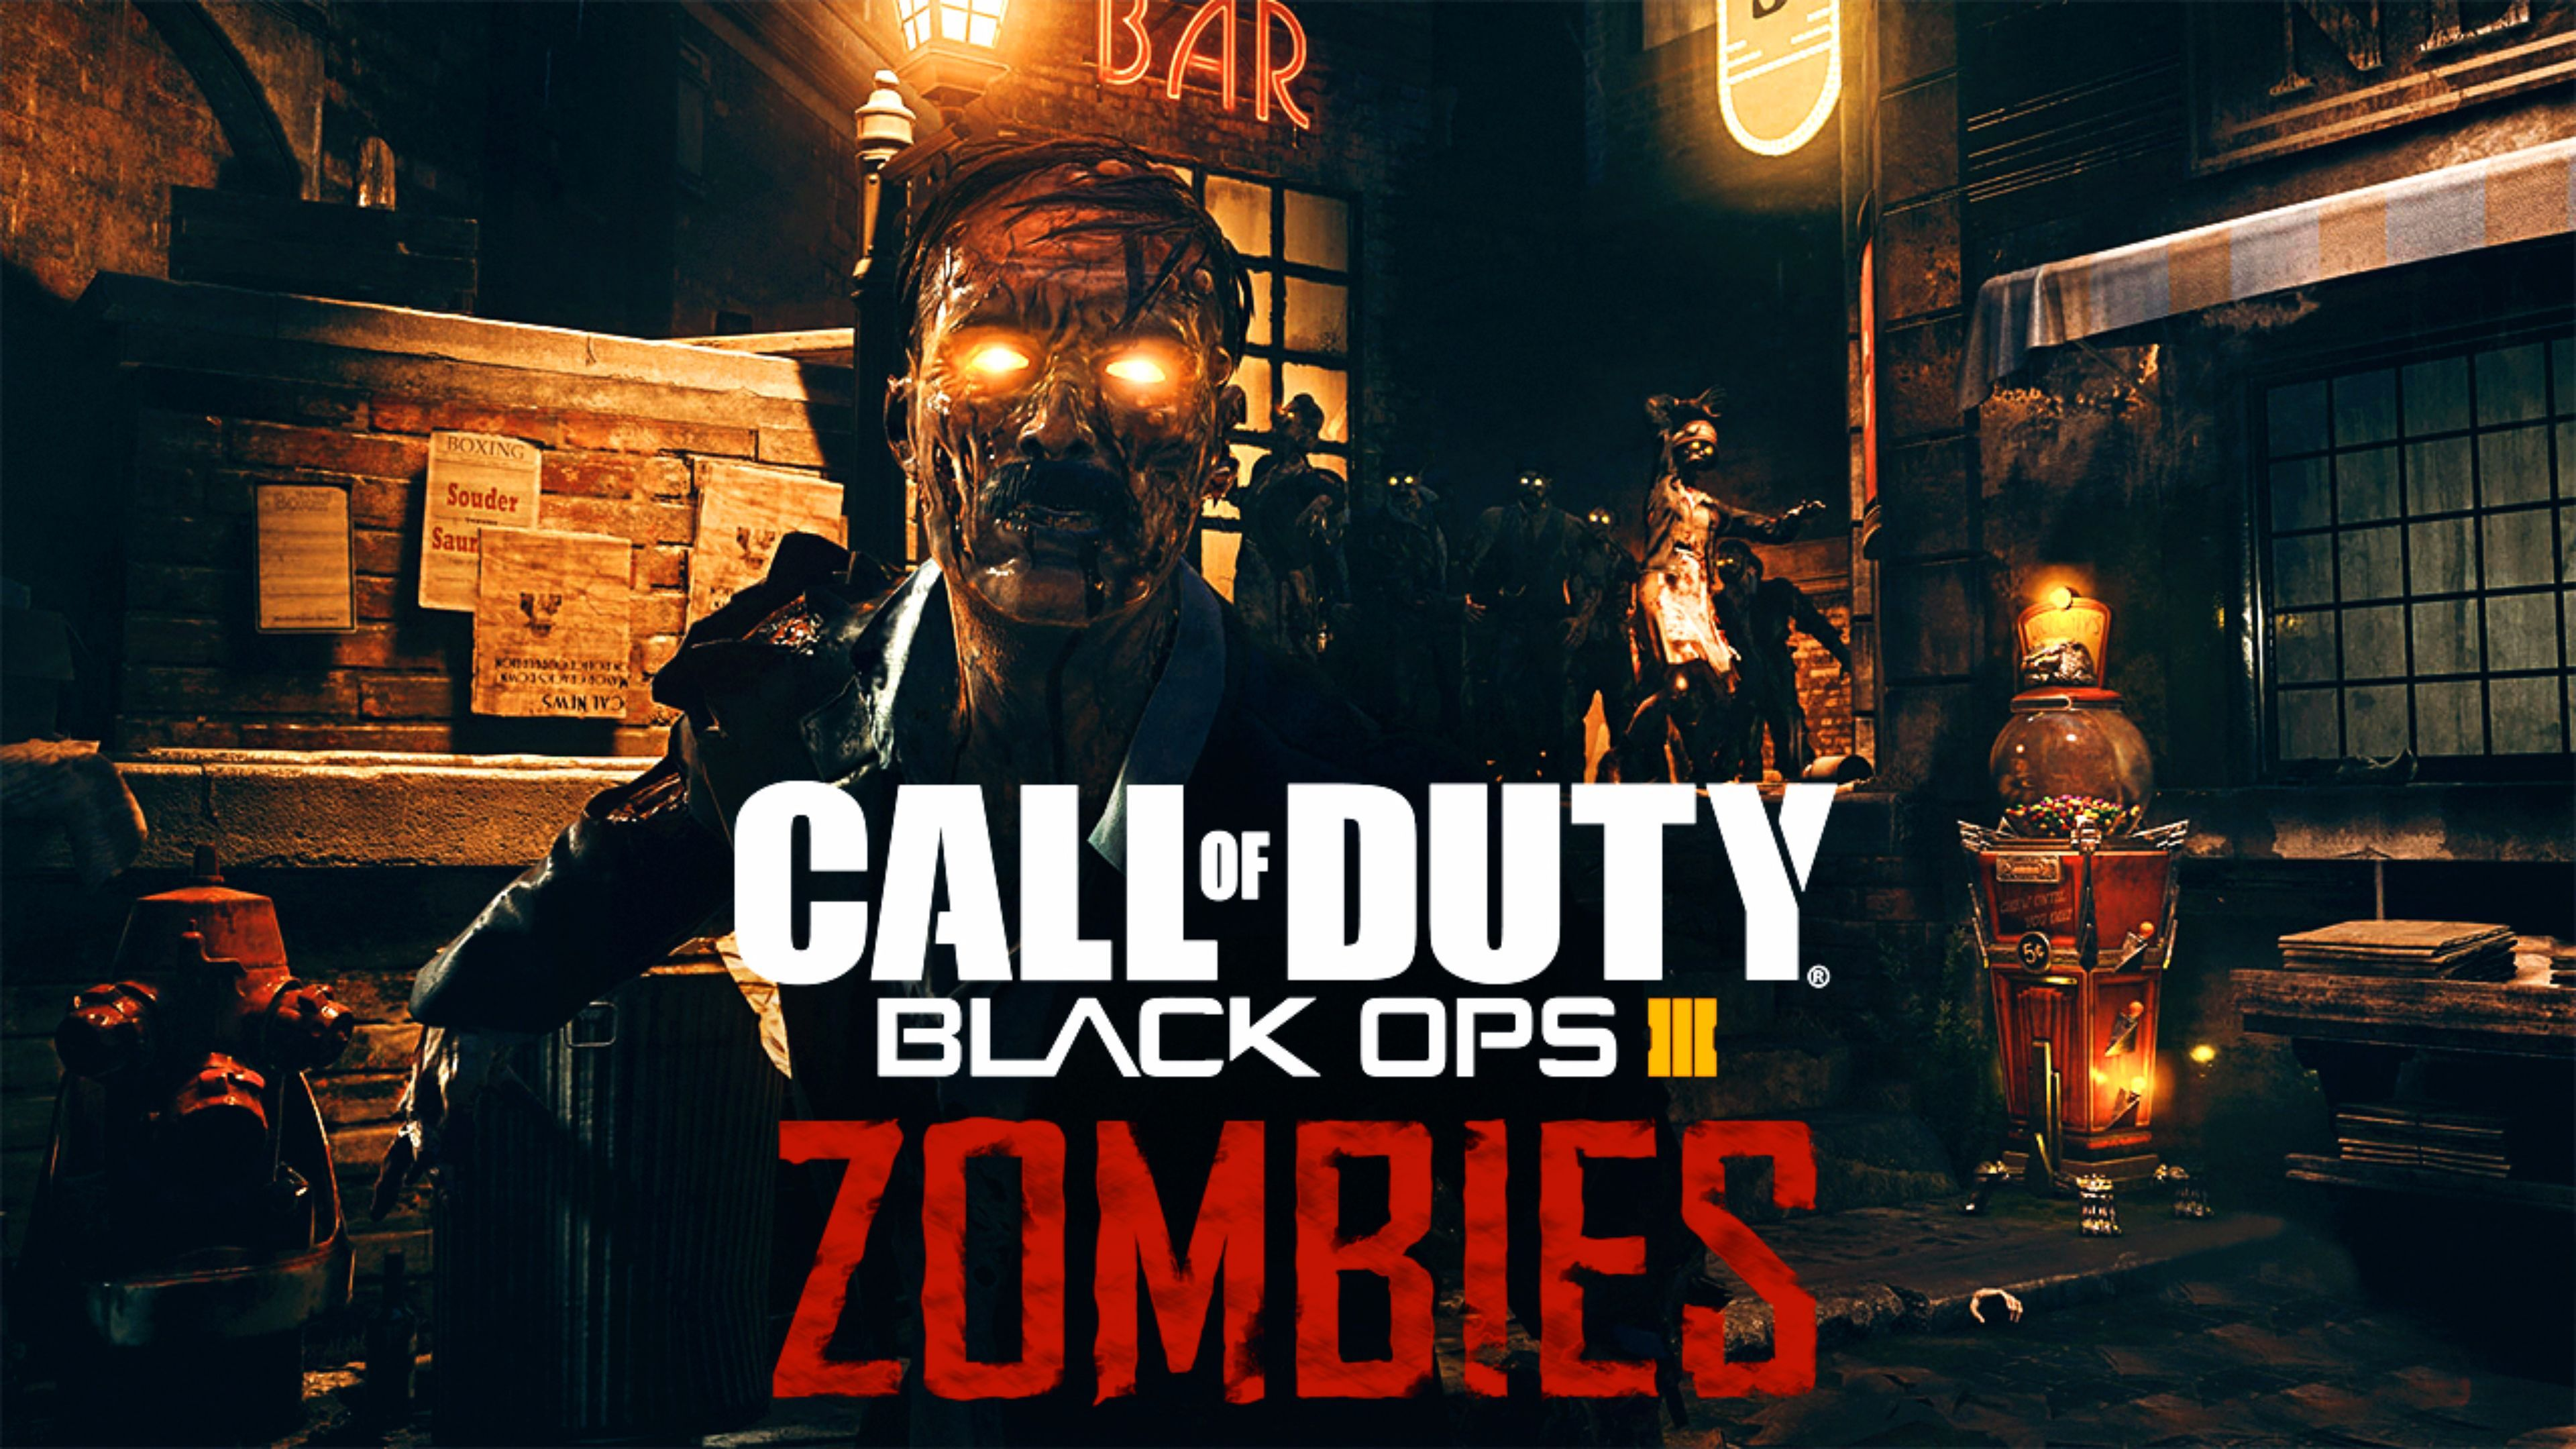 Call of Duty Black Ops Wallpapers - Top Free Call of Duty